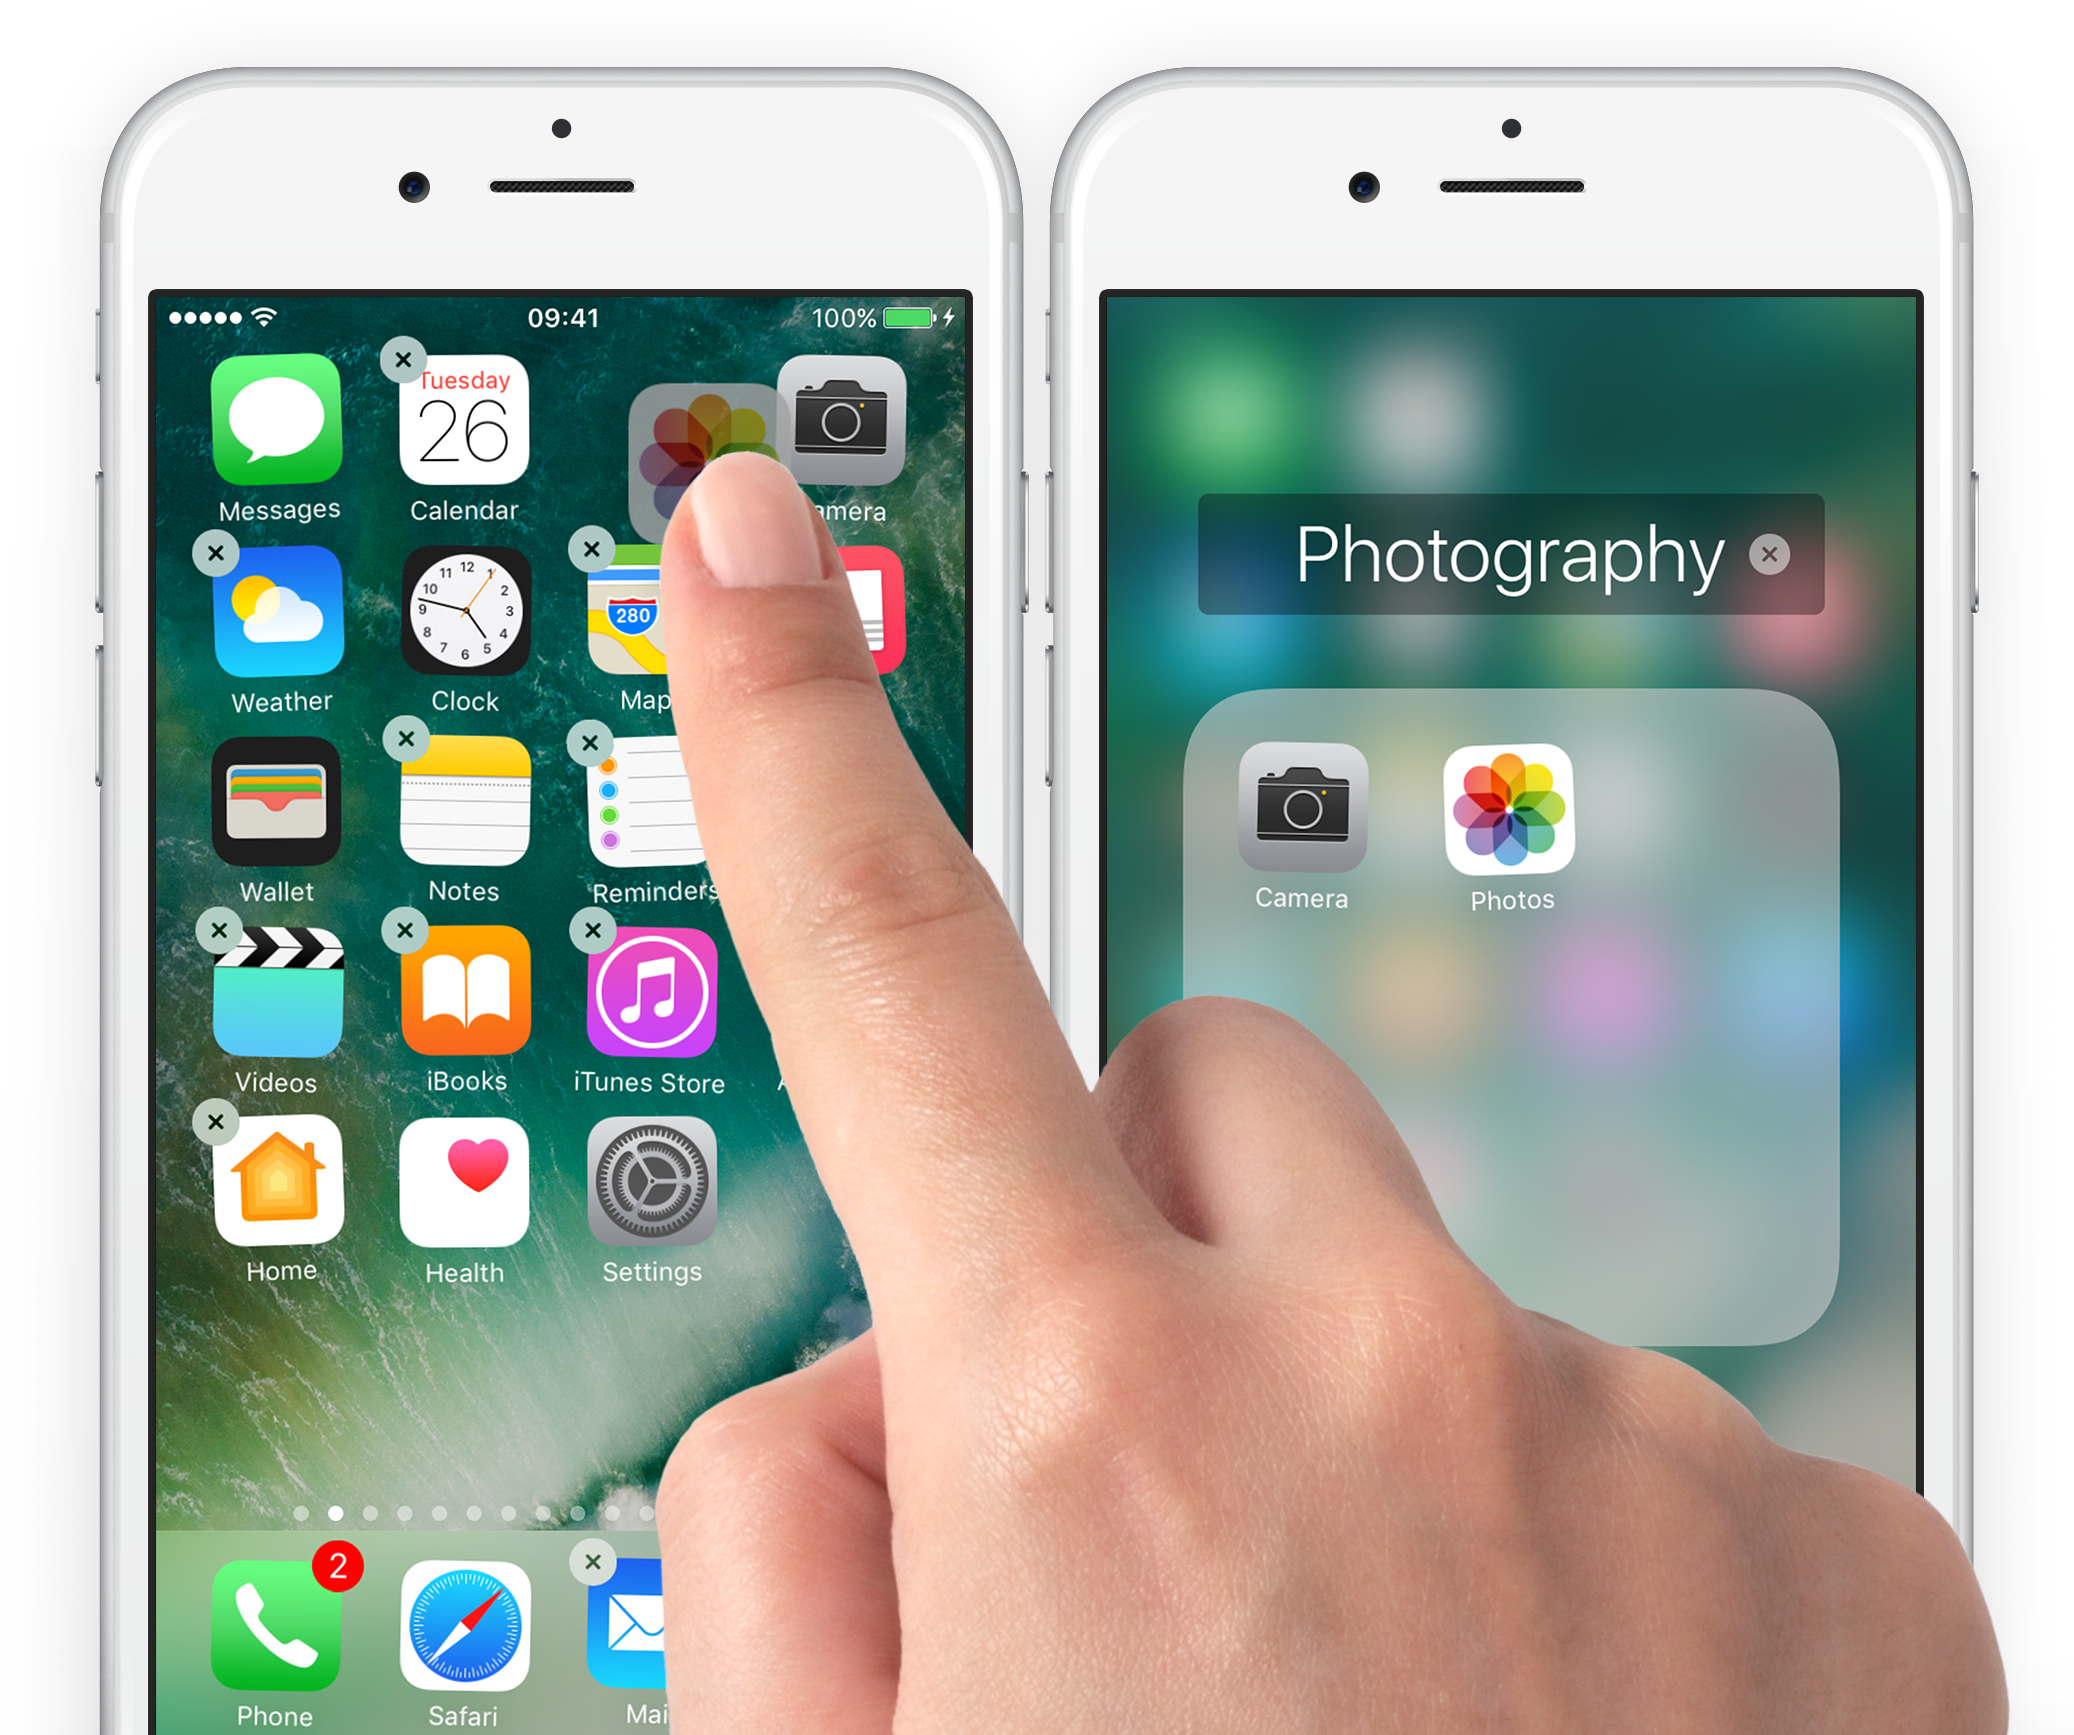 10 Organizing Apps: Guide: Organize Apps Like A Pro With Folders